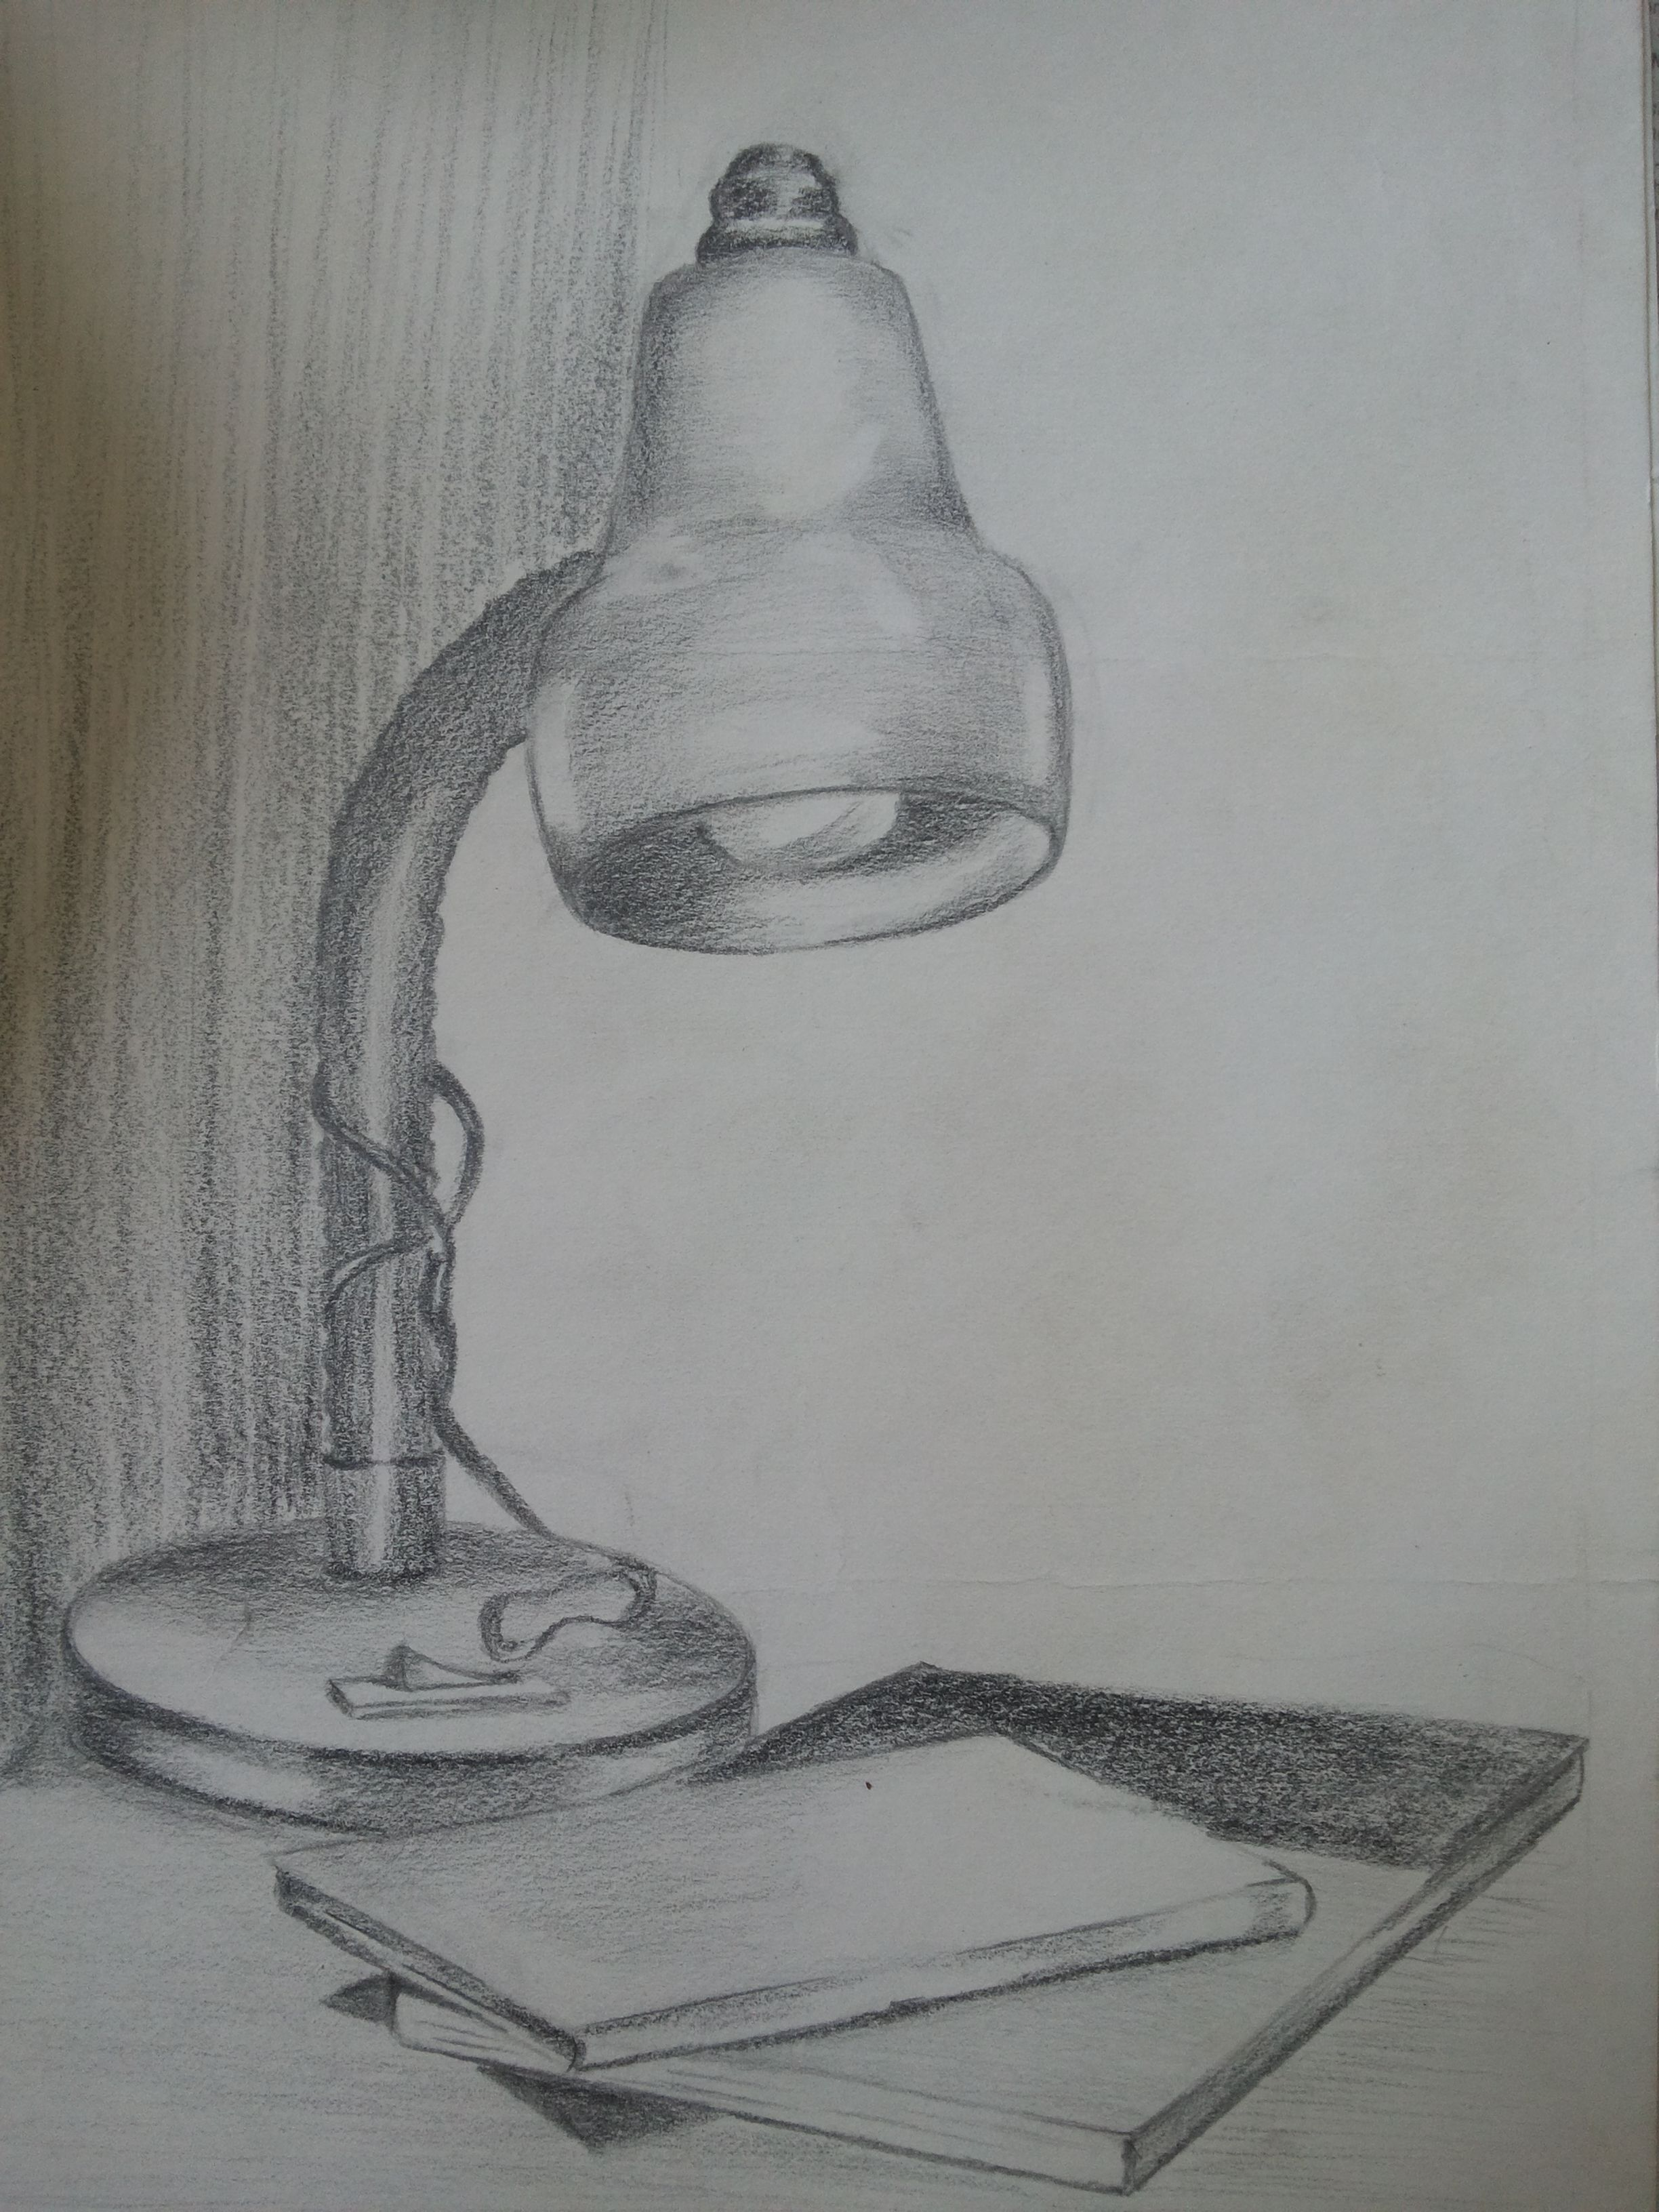 Live Sketch, Charcoal shading | Pencil art drawings ...